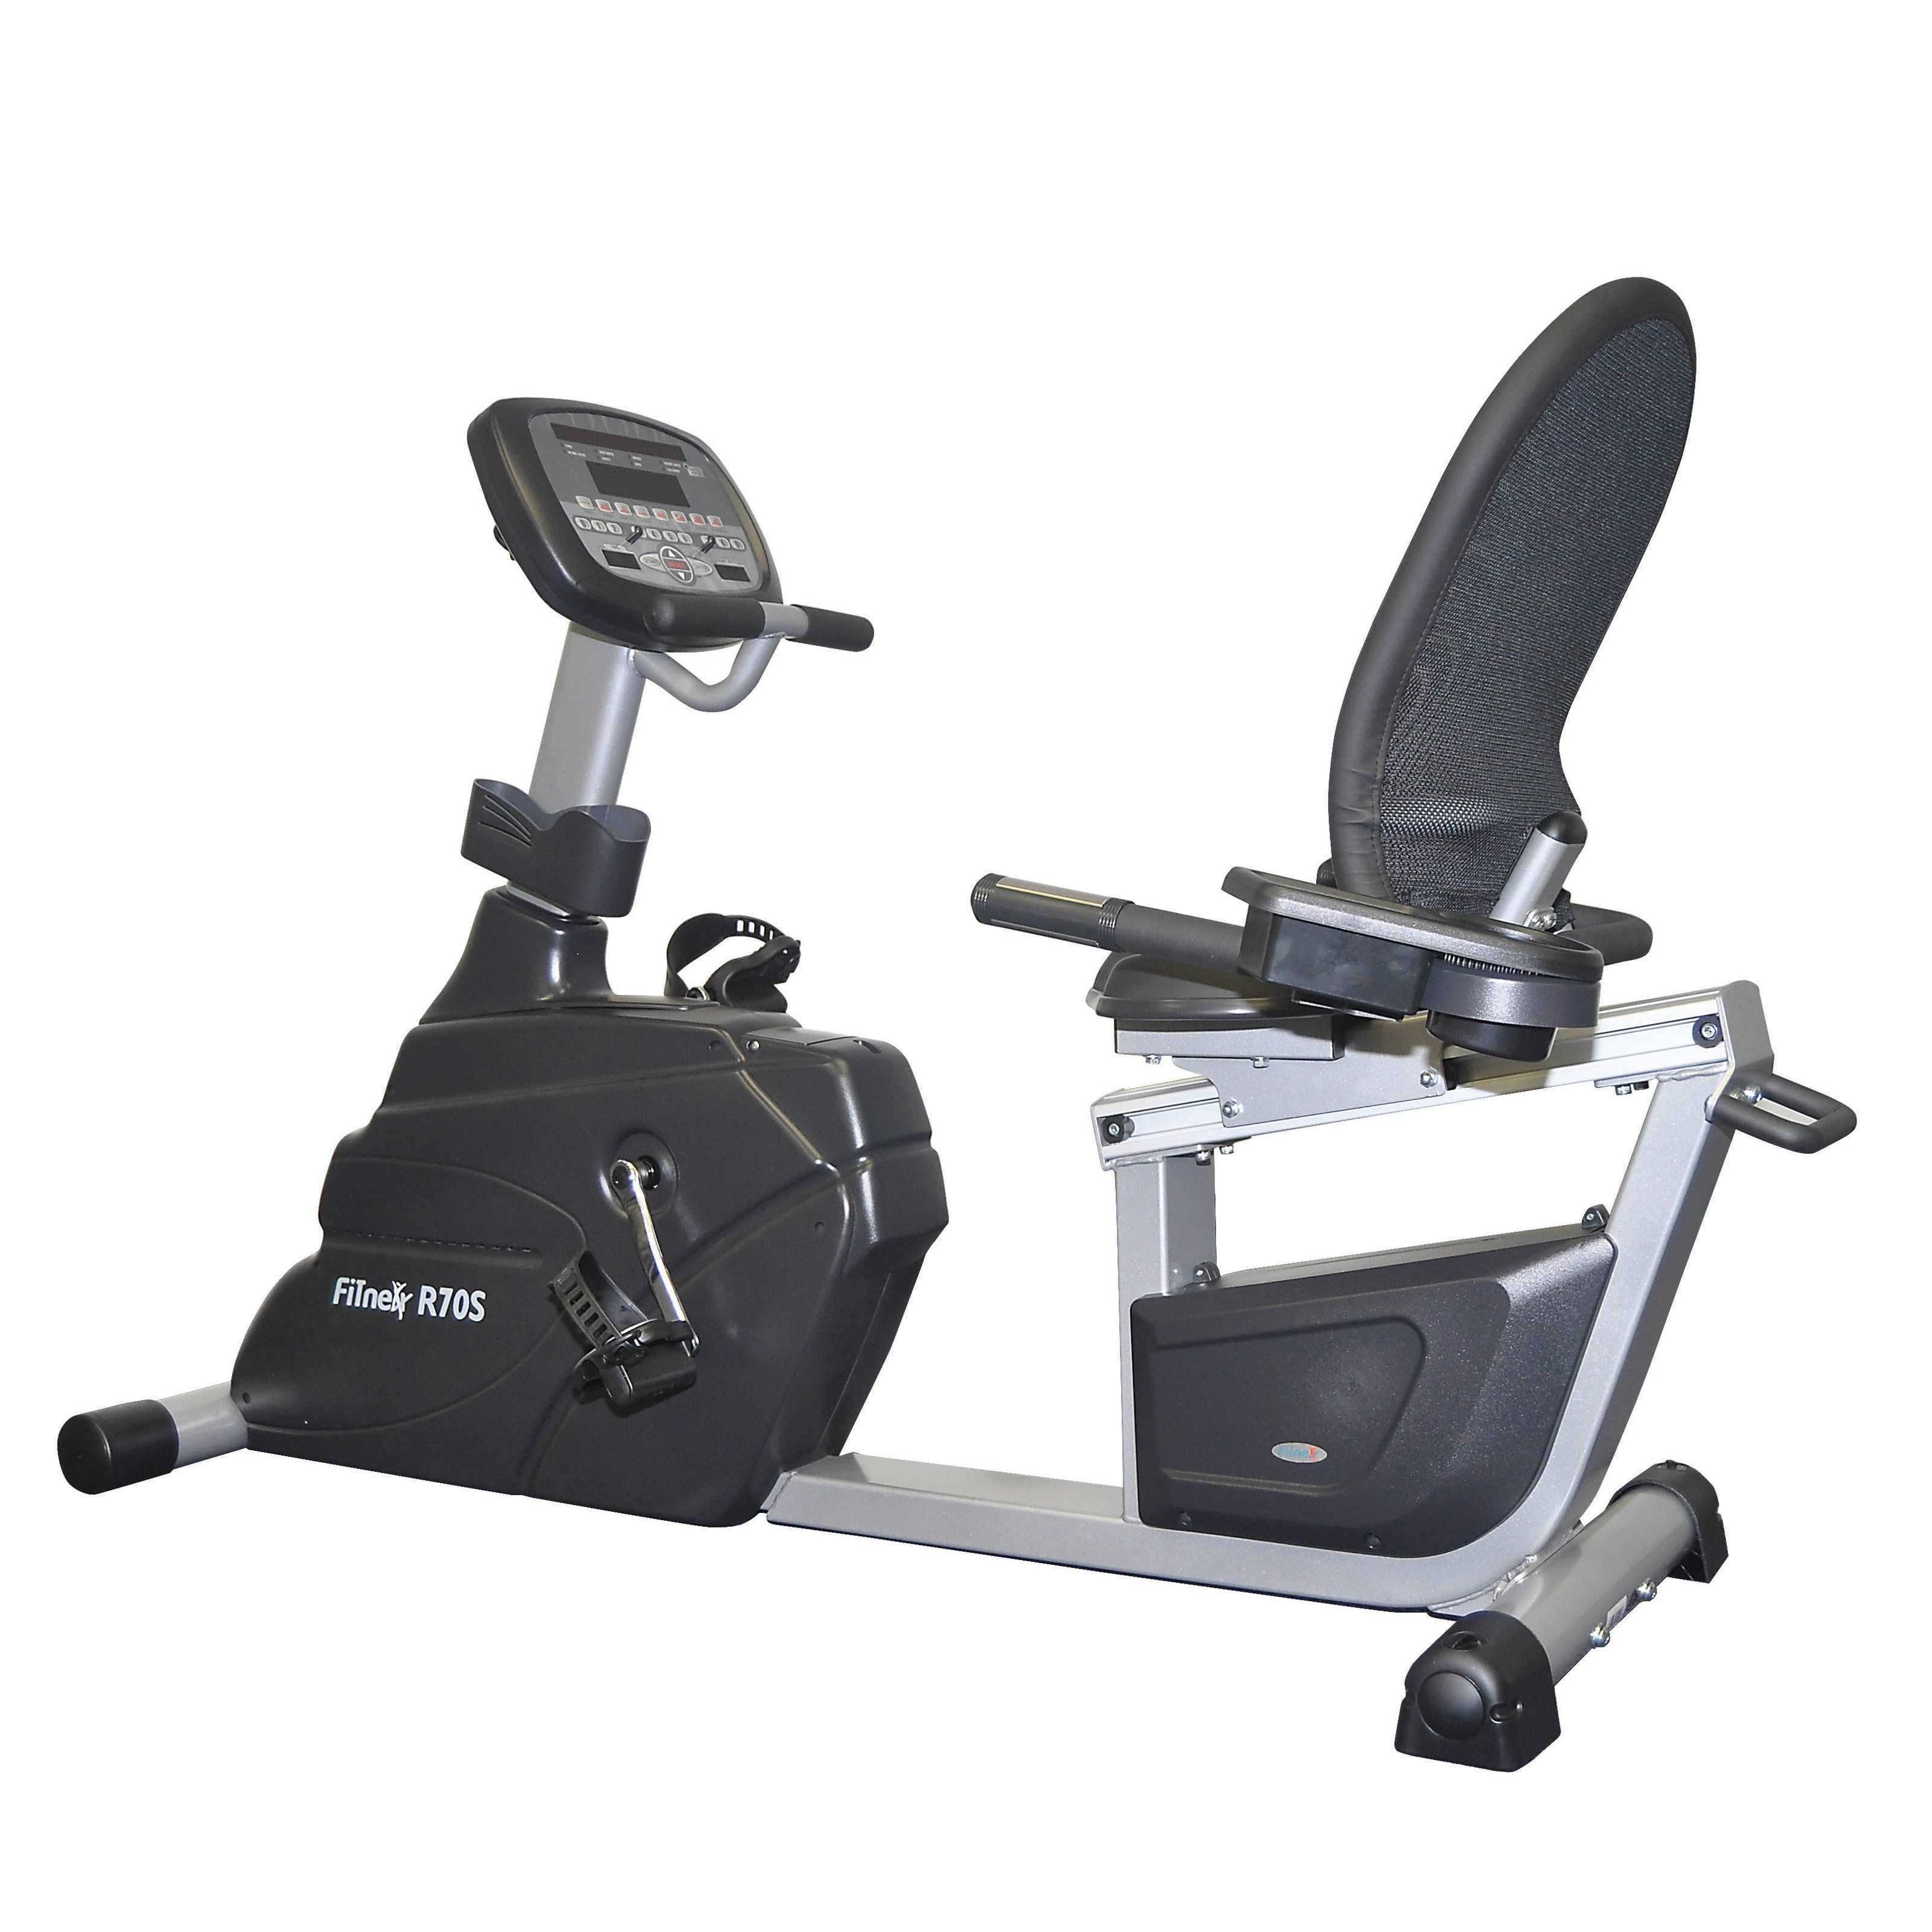 Fitnex R70 Recumbent Light Commercial Exercise Bike - R70   Products ...